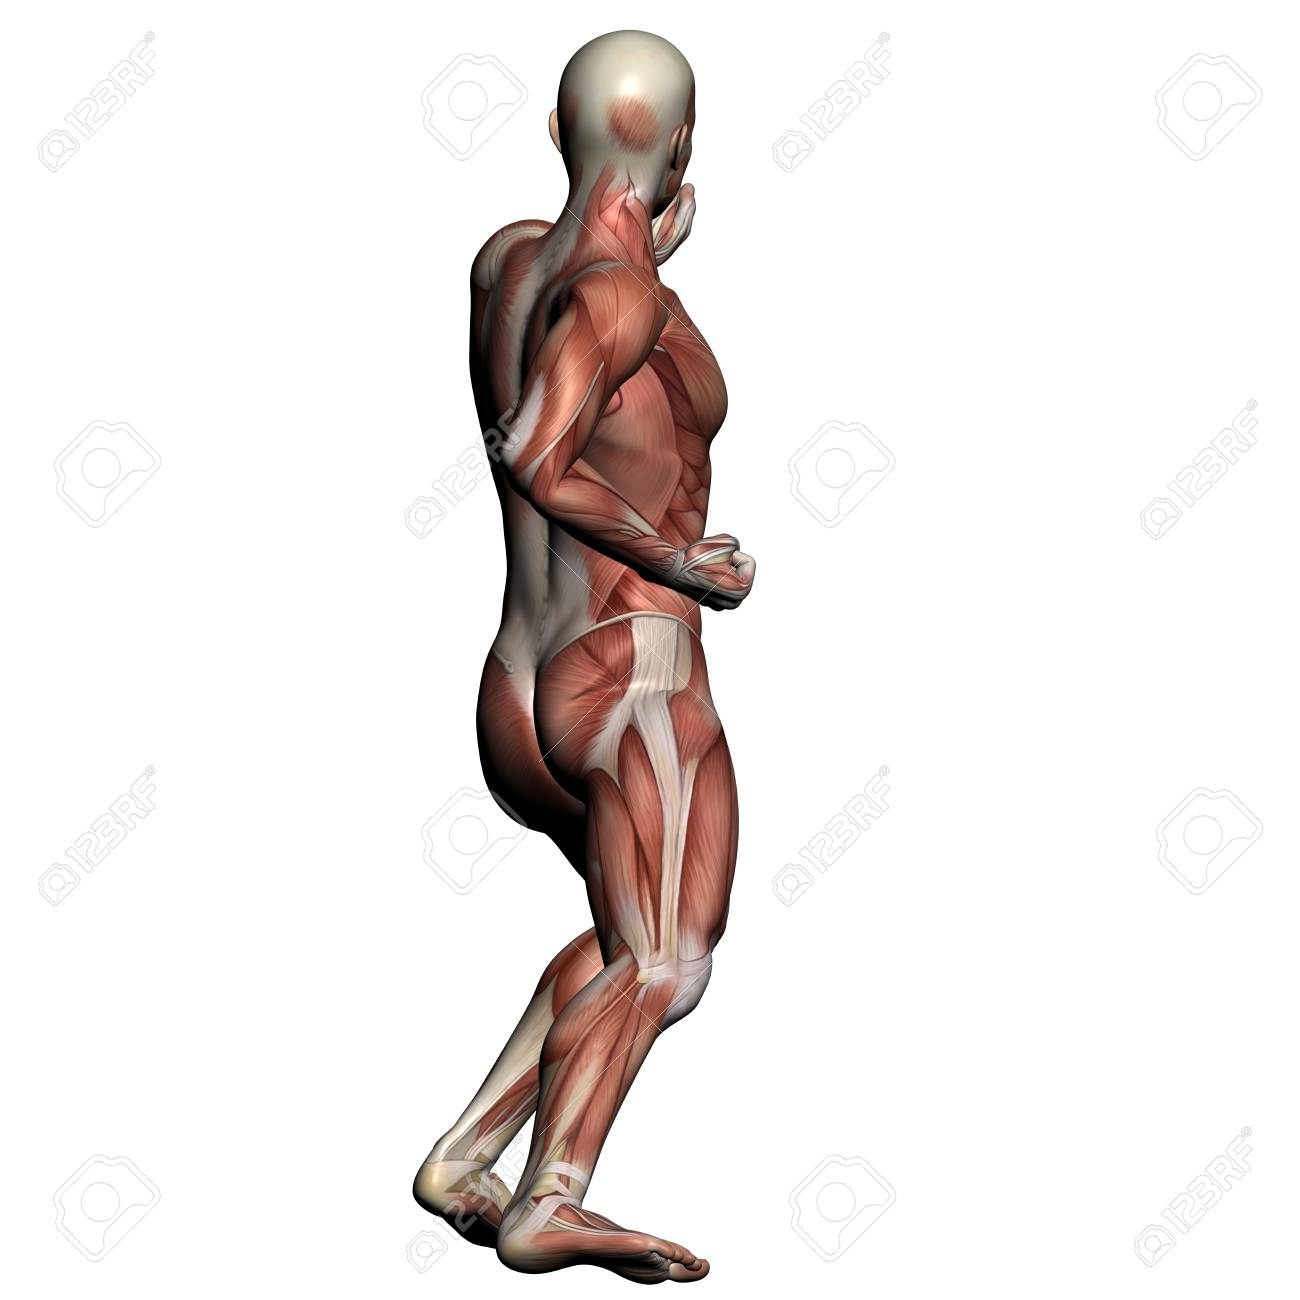 Human Anatomy Male Muscles Made In 3d Software Stock Photo